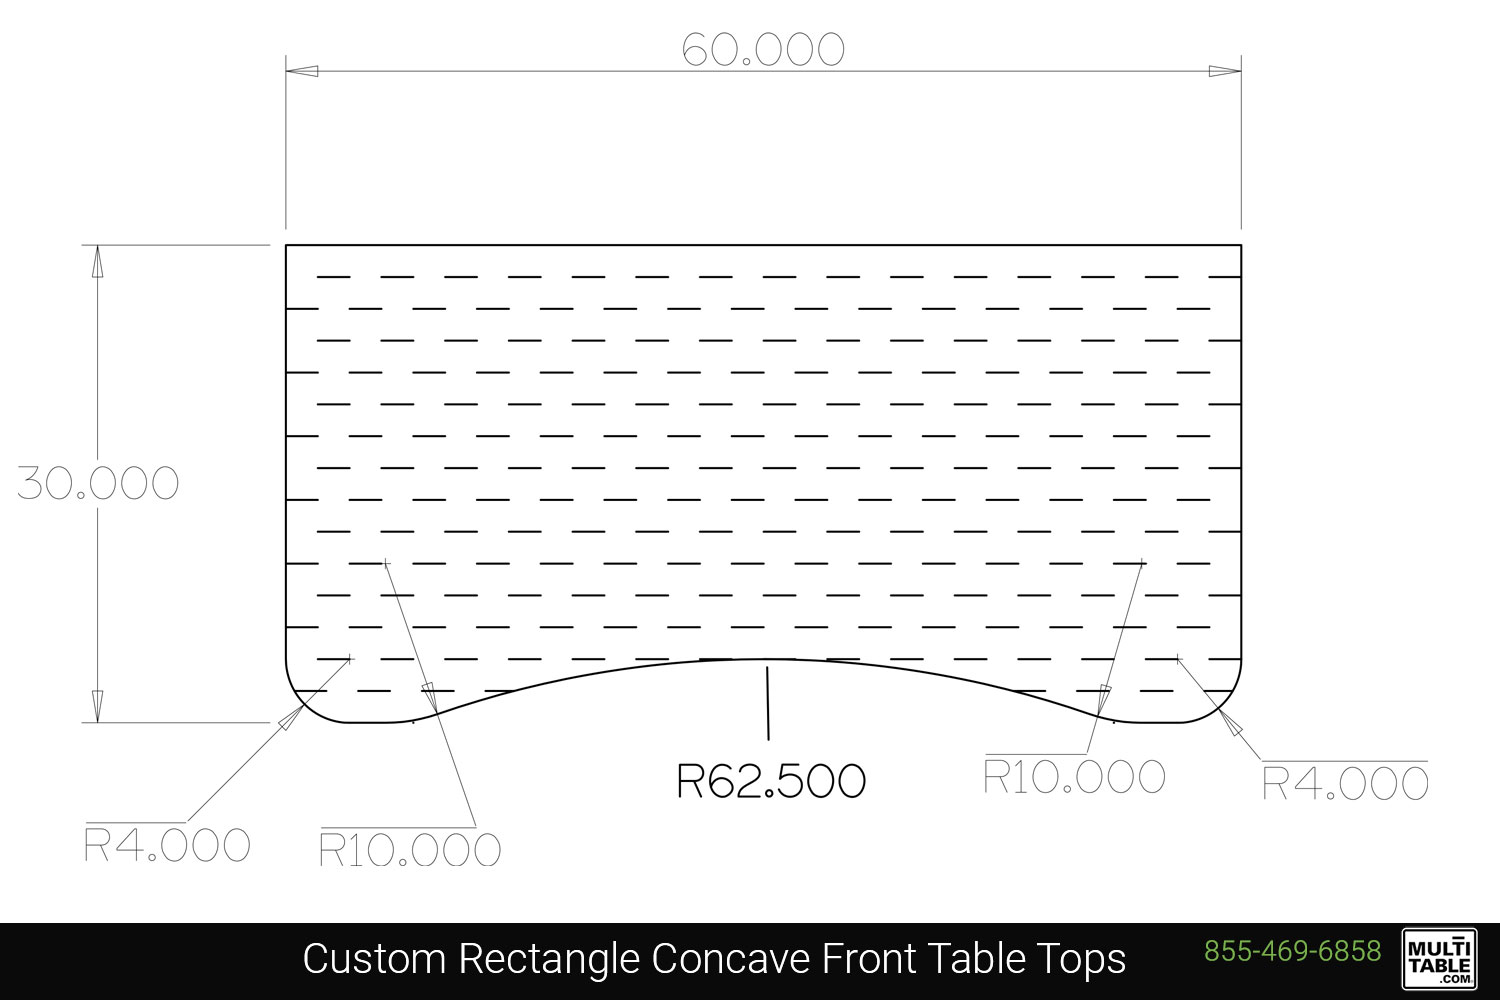 Custom Rectangle Concave Front Table Tops Shapes MultiTable Office Furniture Manufacturing Phoenix Arizona Since 2010